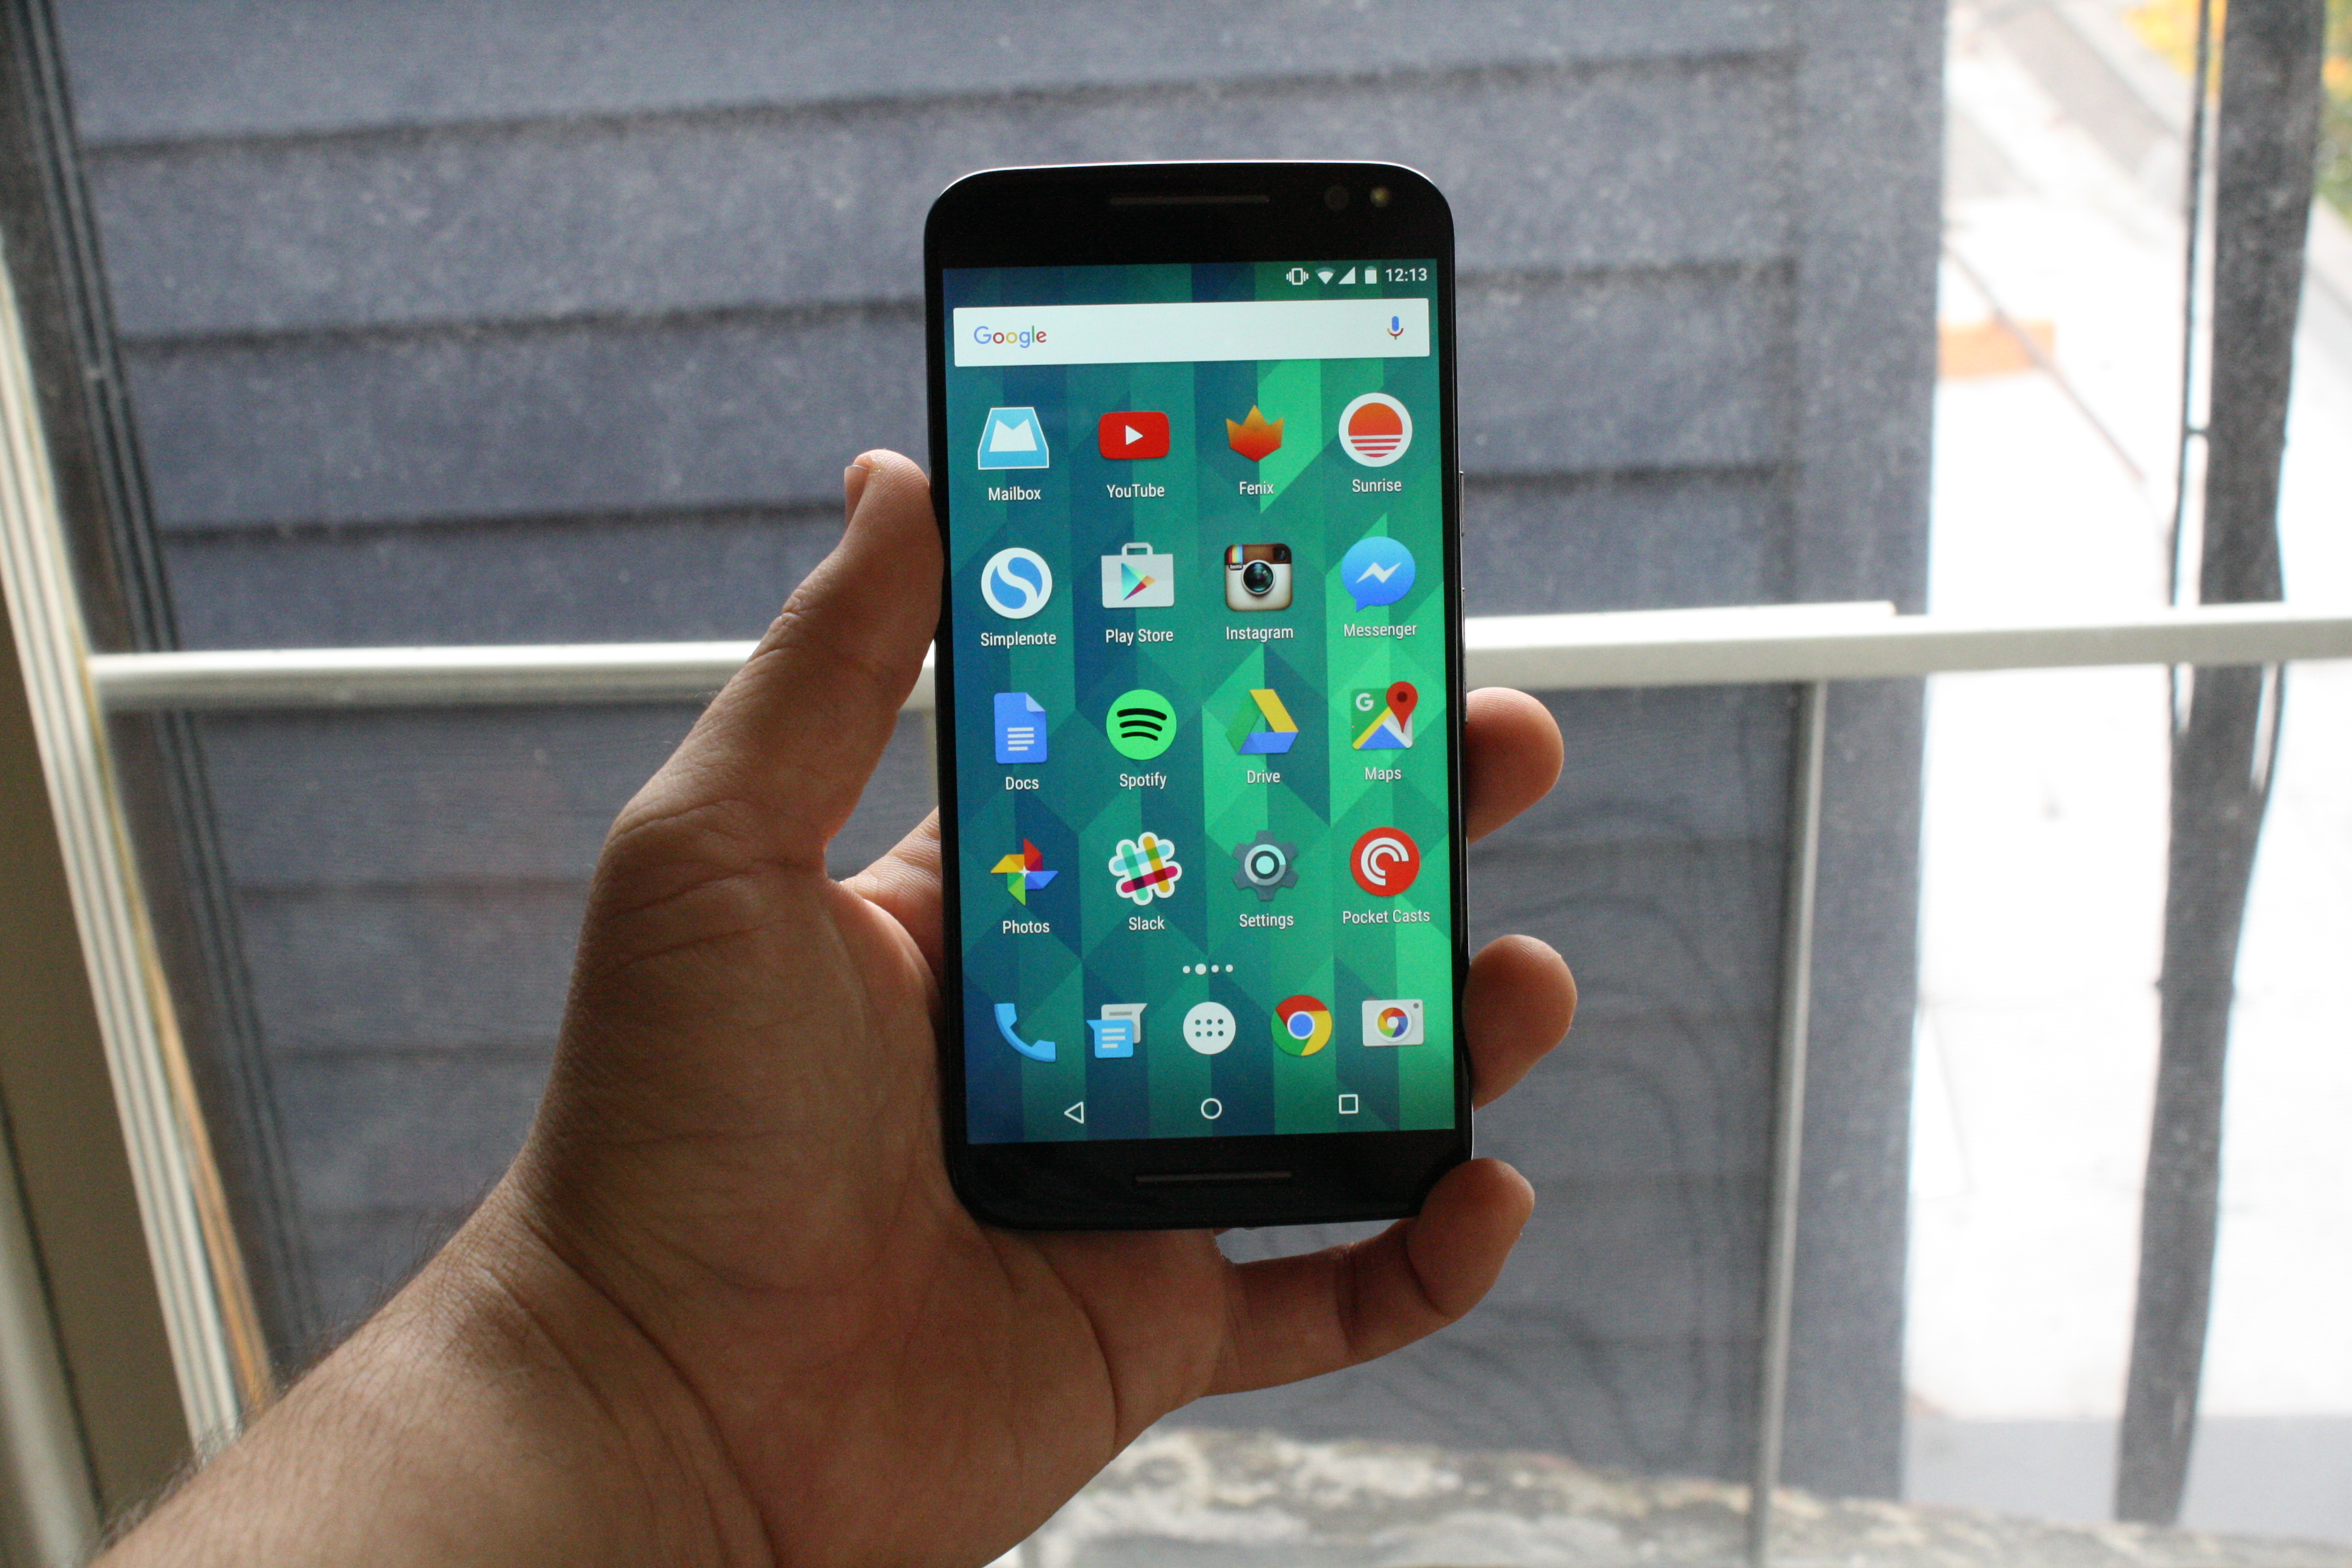 Phone Moto X Android Phone moto x pure edition review android tech the software on is as near stock youll find outside of nexus devices which a really good thi